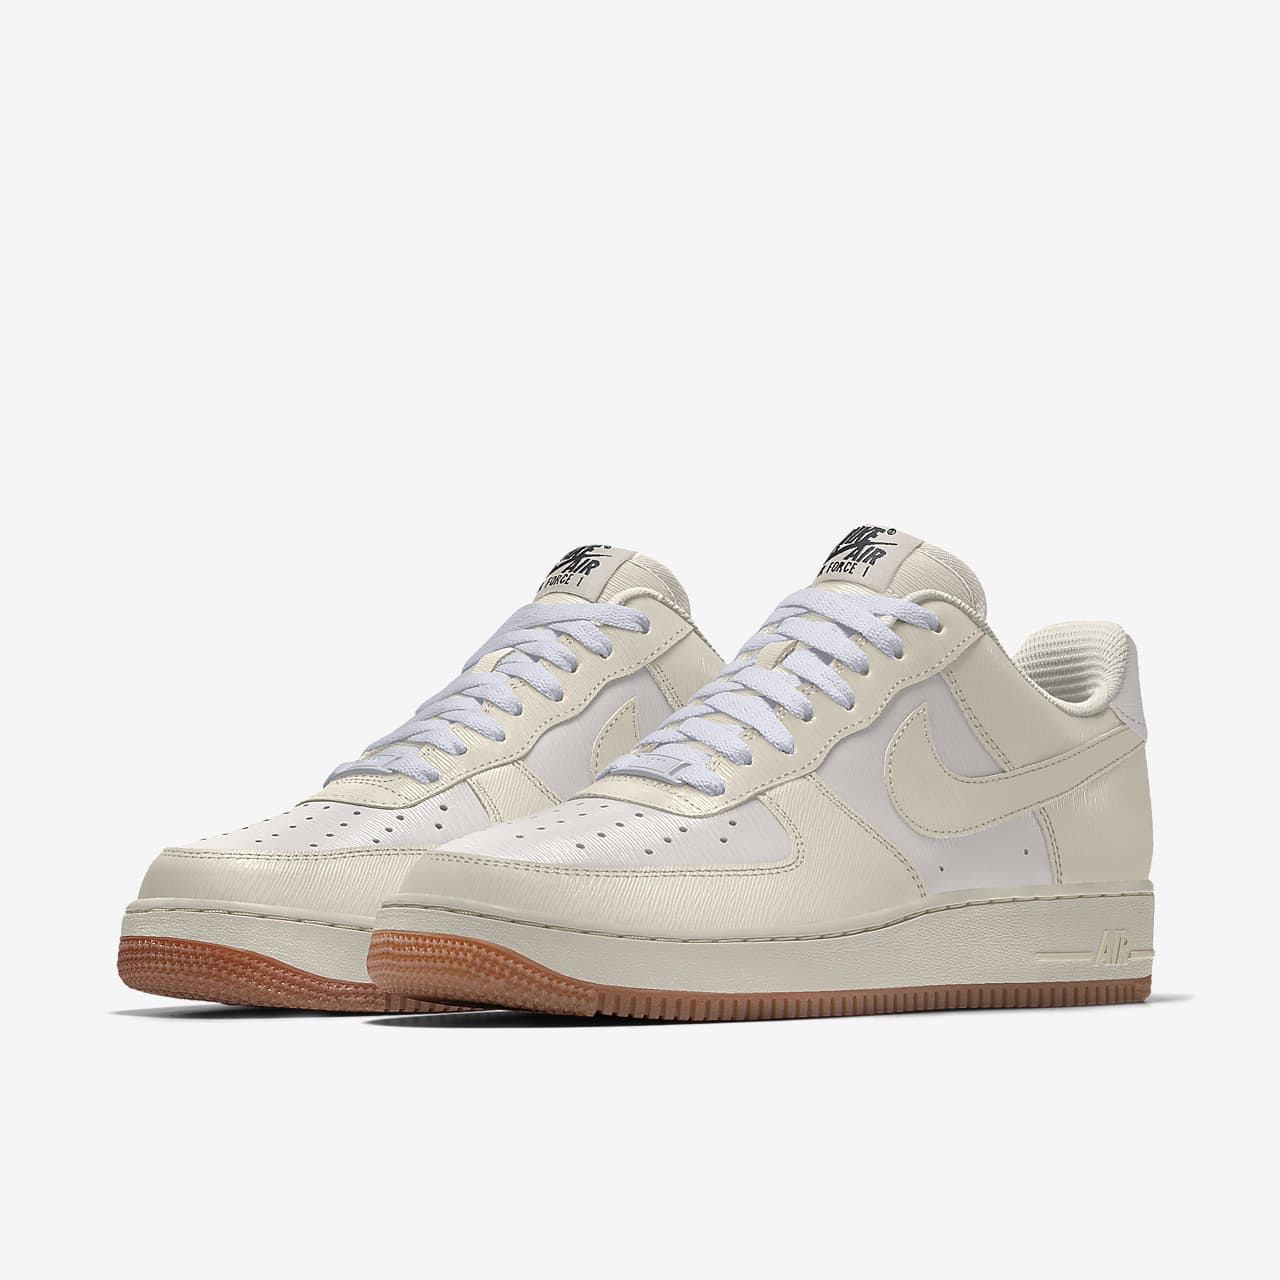 Chaussure personnalisable Nike Air Force 1 By You pour Homme